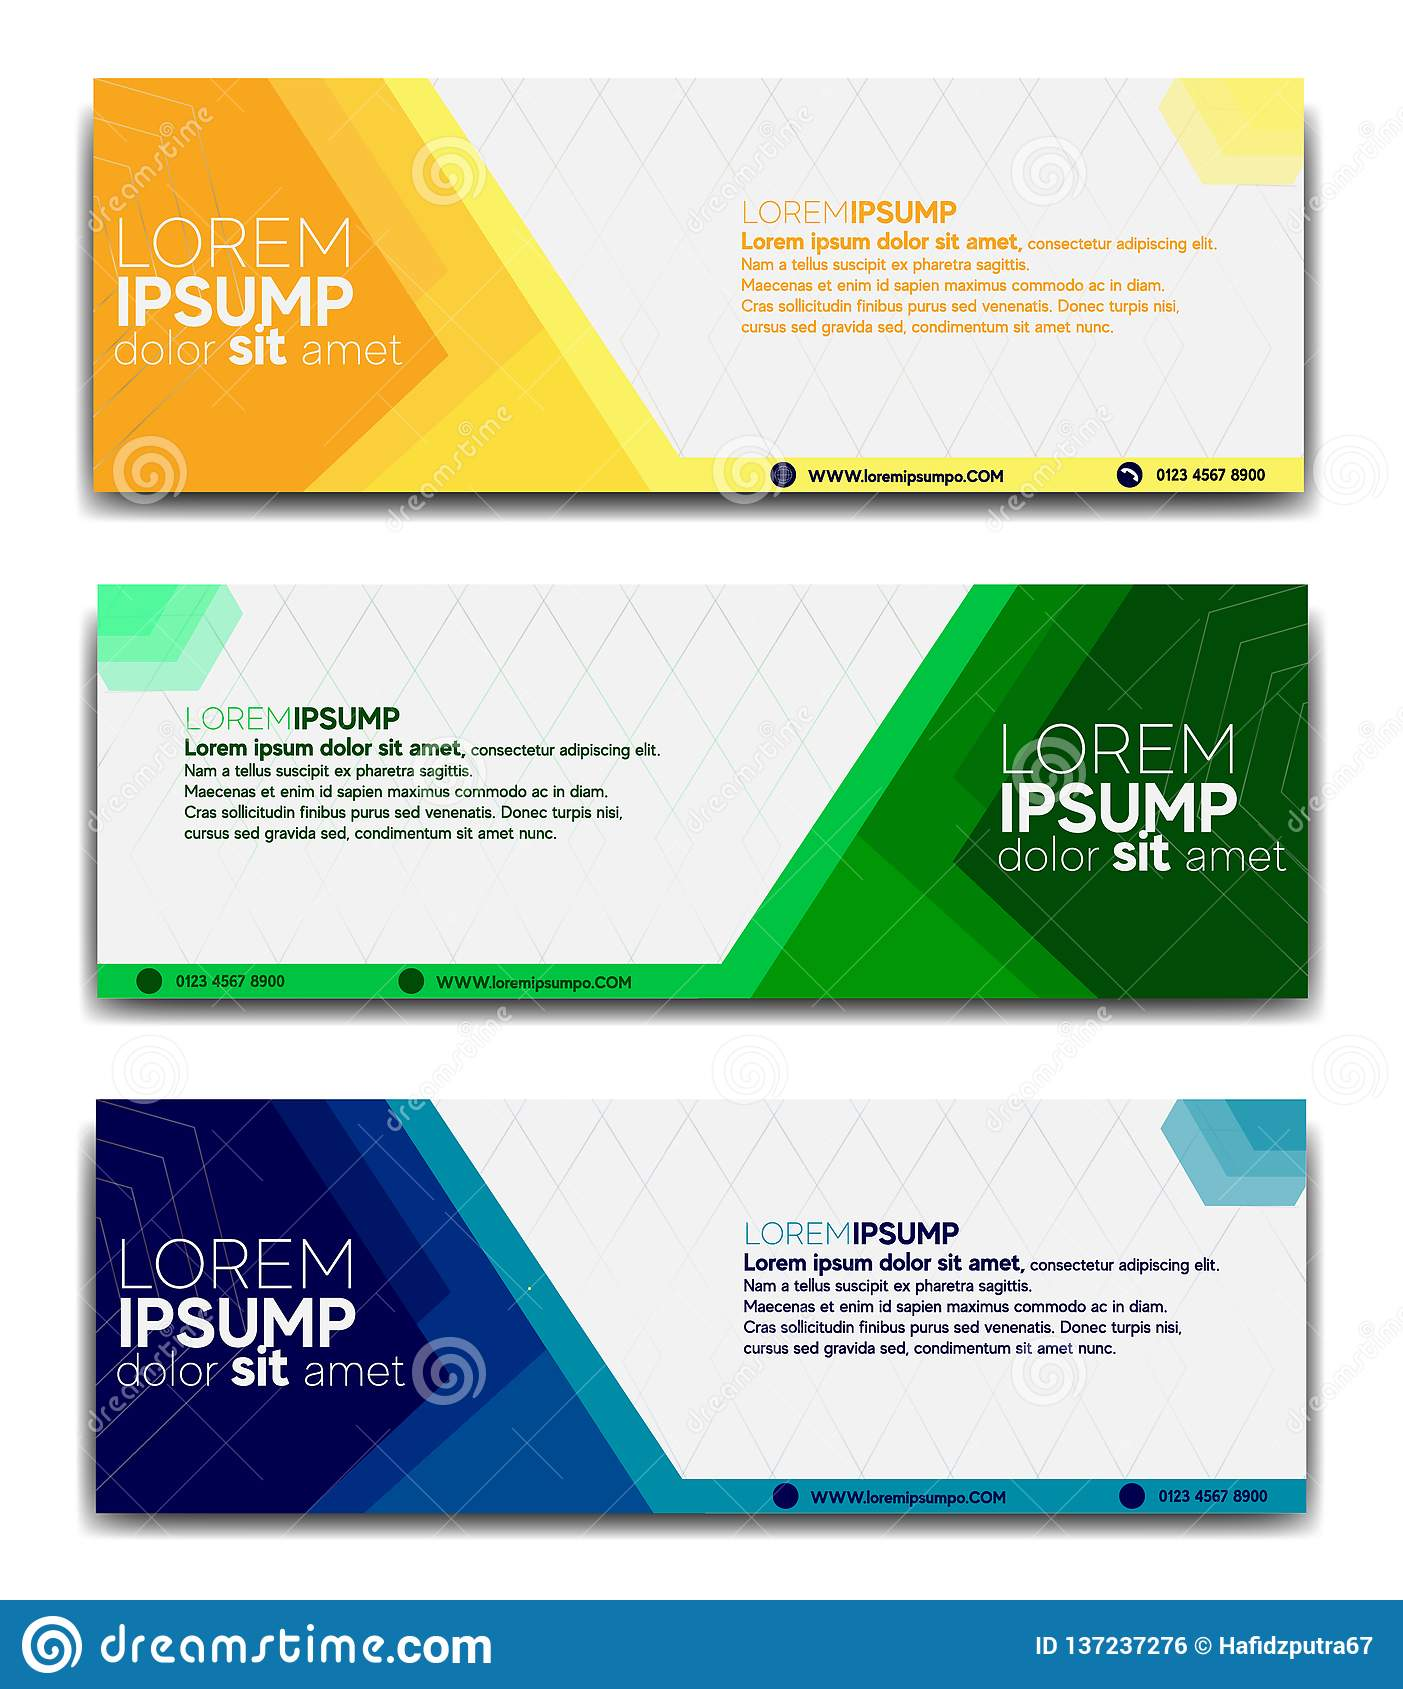 Promotional Banner Design Template 2019 Stock Vector Illustration Of Flatbanners Backgrounds 137237276